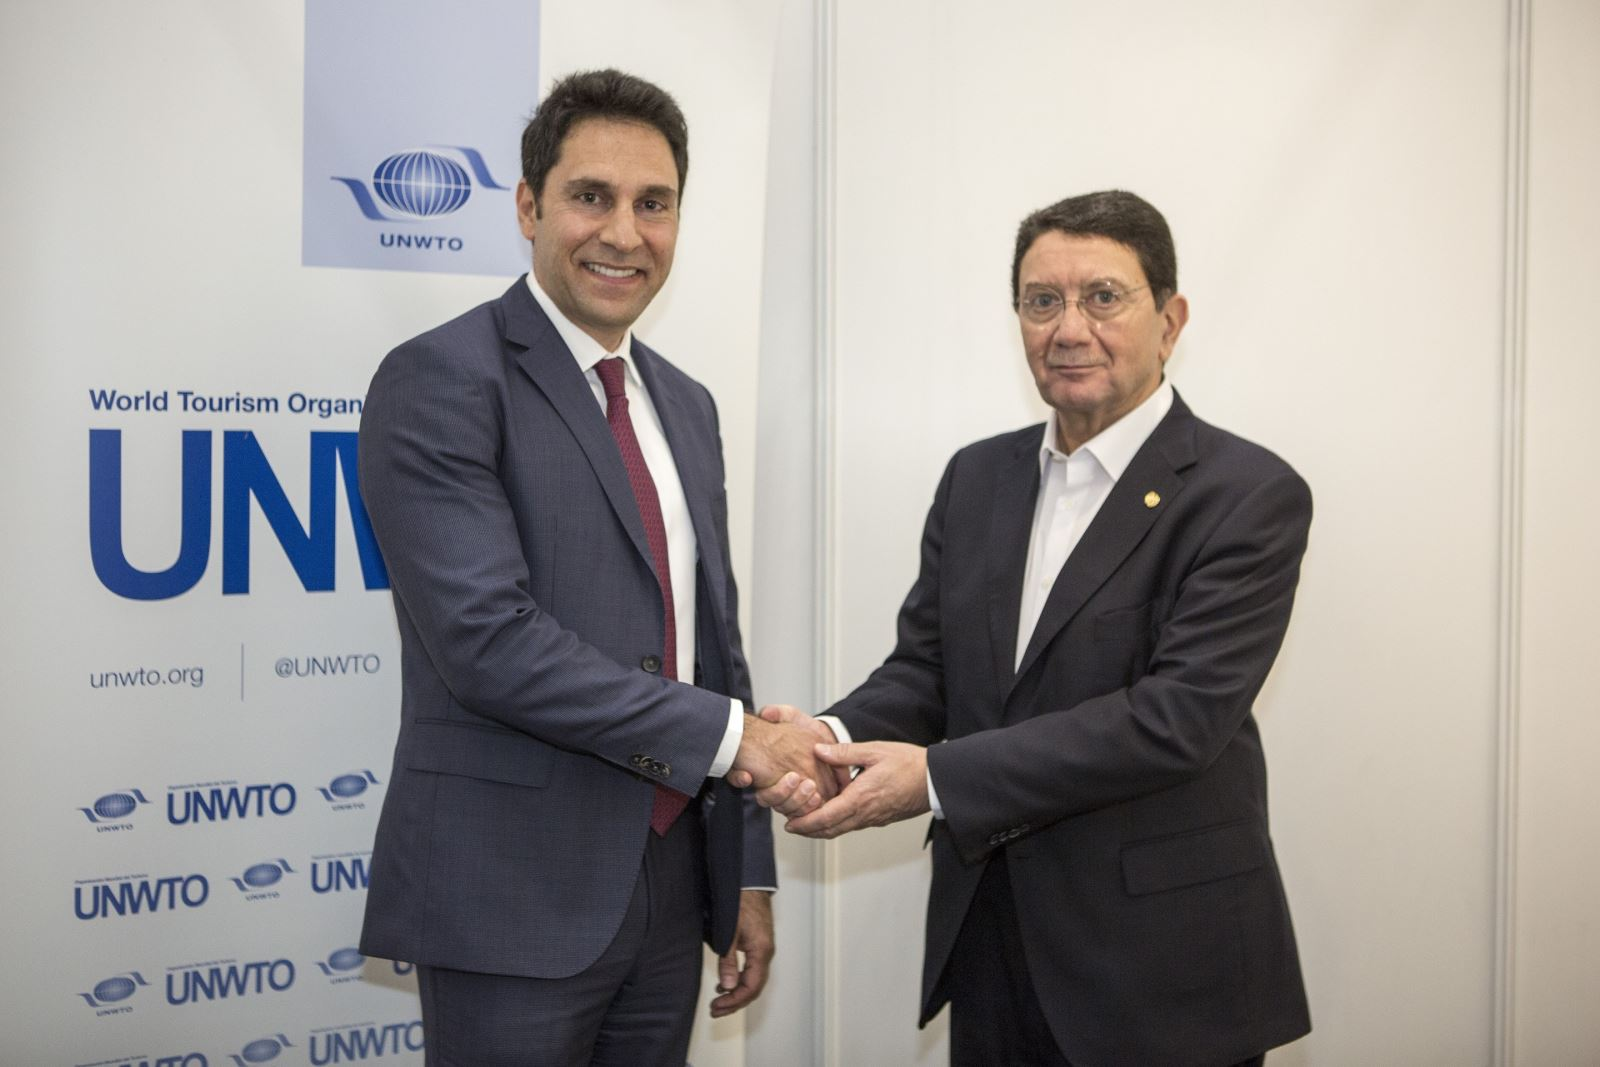 RAKTDA CEO Haitham Mattar With UNWTO Secretary General Taleb Rifai Small